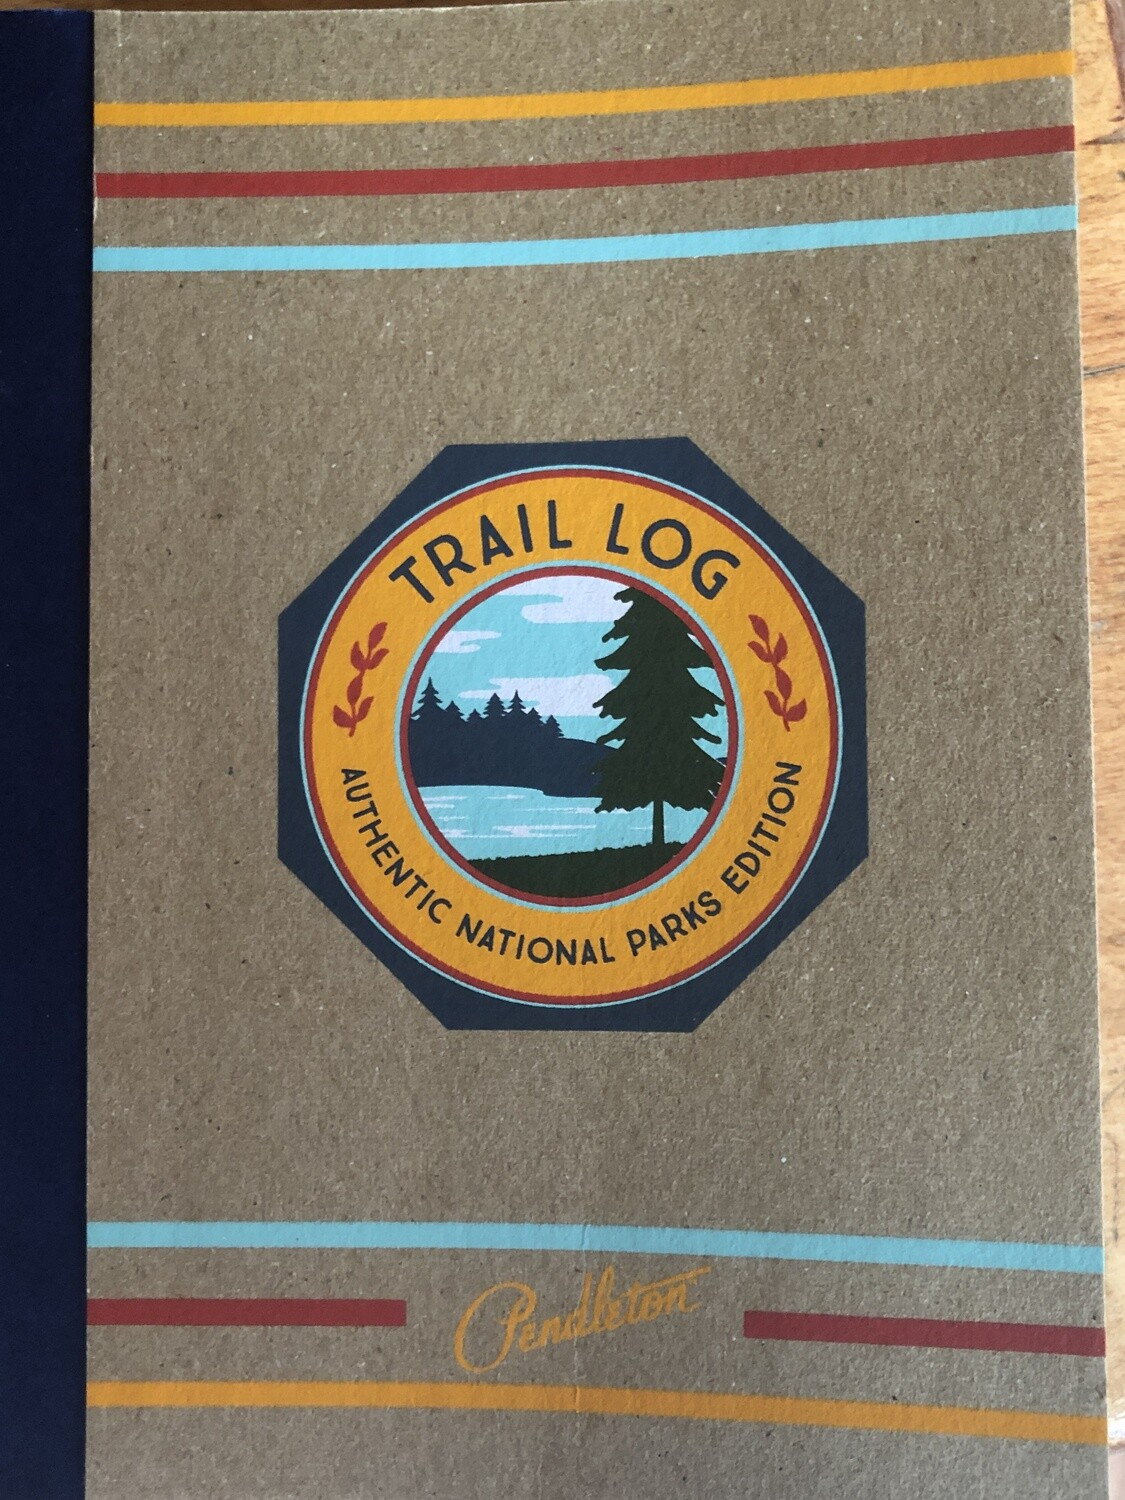 Trail Log, Ntl Parks